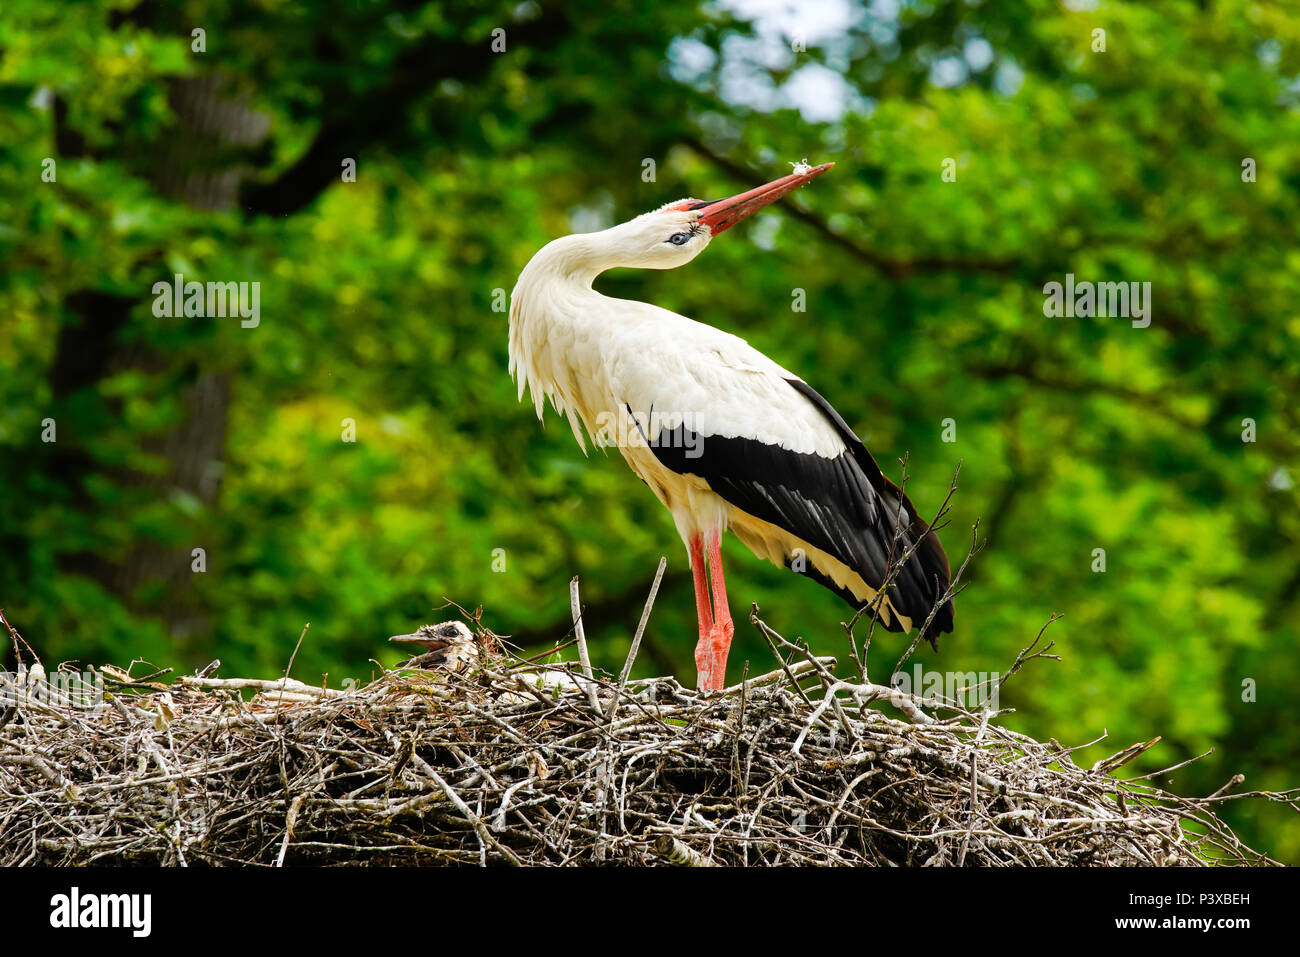 White storks (Ciconia ciconia) greeting in the nest, Switzerland. - Stock Image